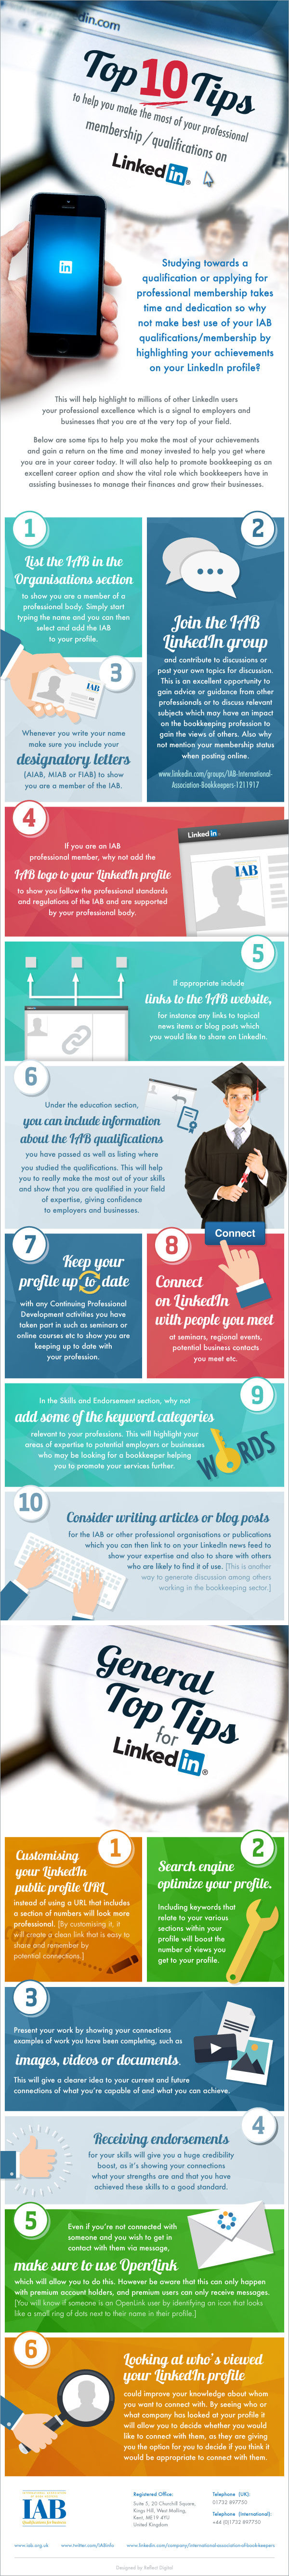 Top LinkedIn tips - infographic by IAB